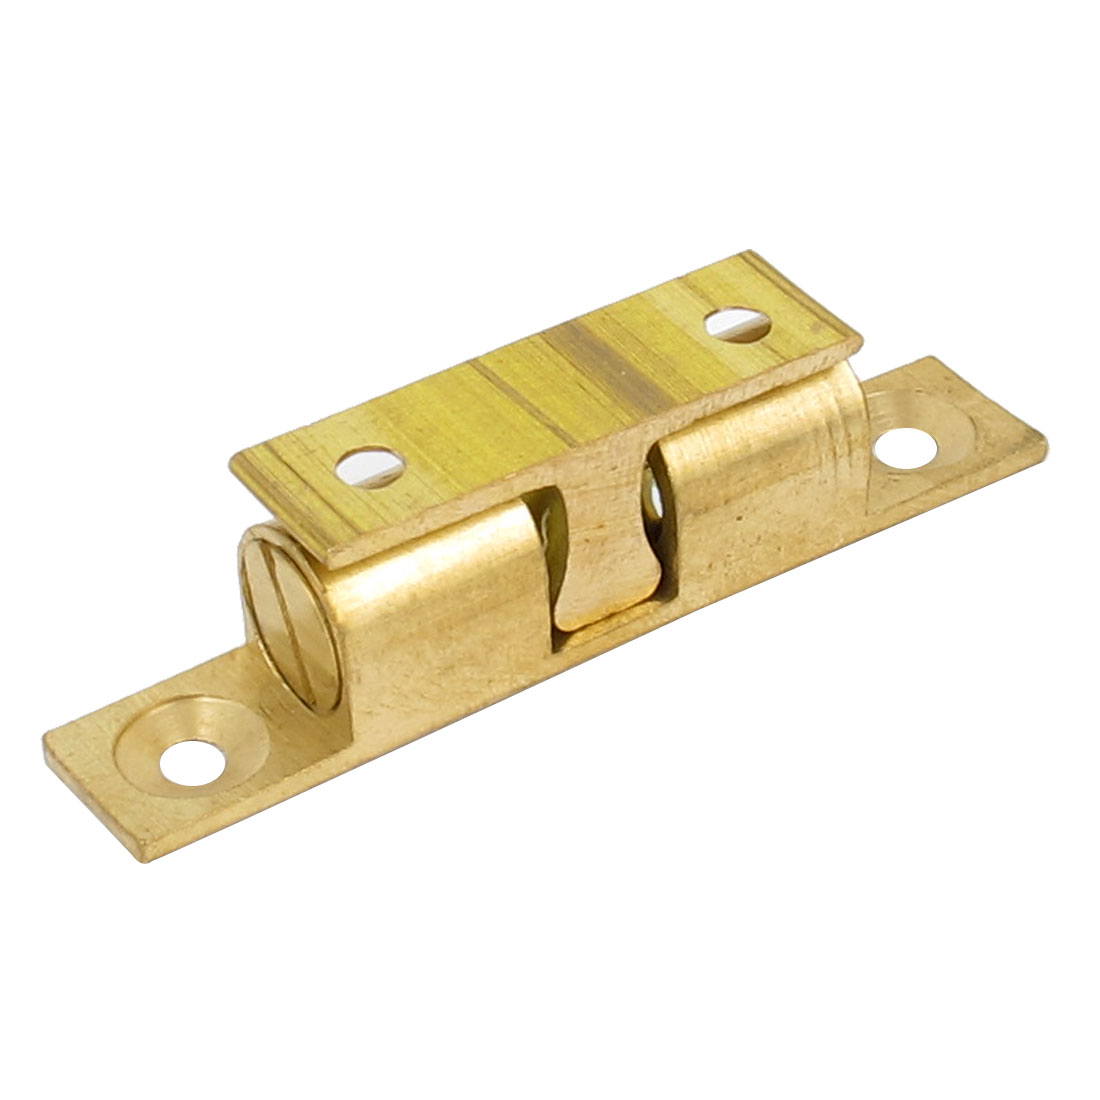 Cupboard Cabinet Closet Door Brass Double Ball Catch Roller Latch 60mm Length